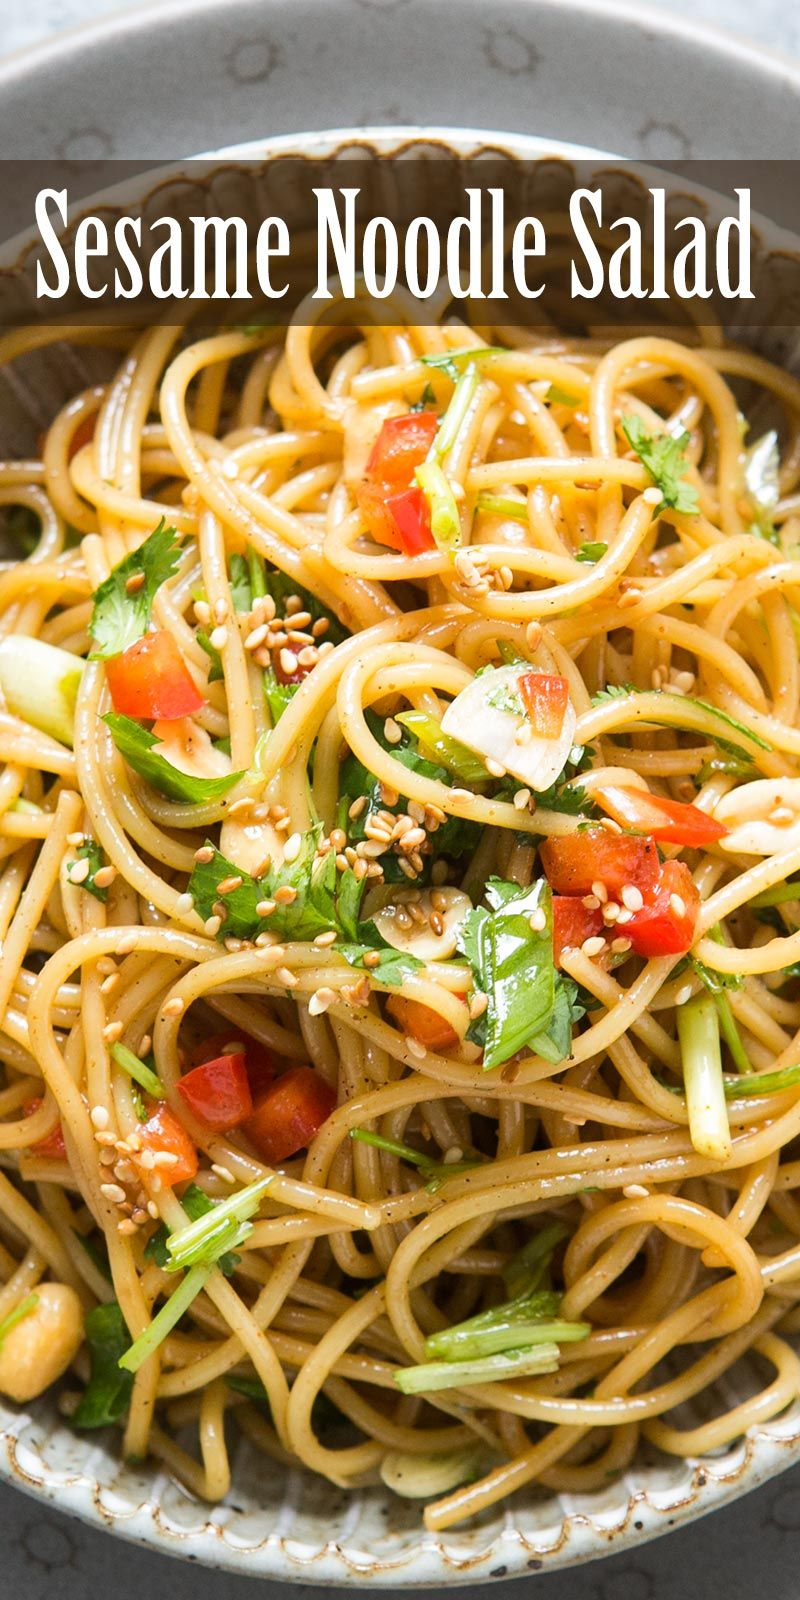 Quick And Easy Pasta Salad For A Hot Day Thin Noodles